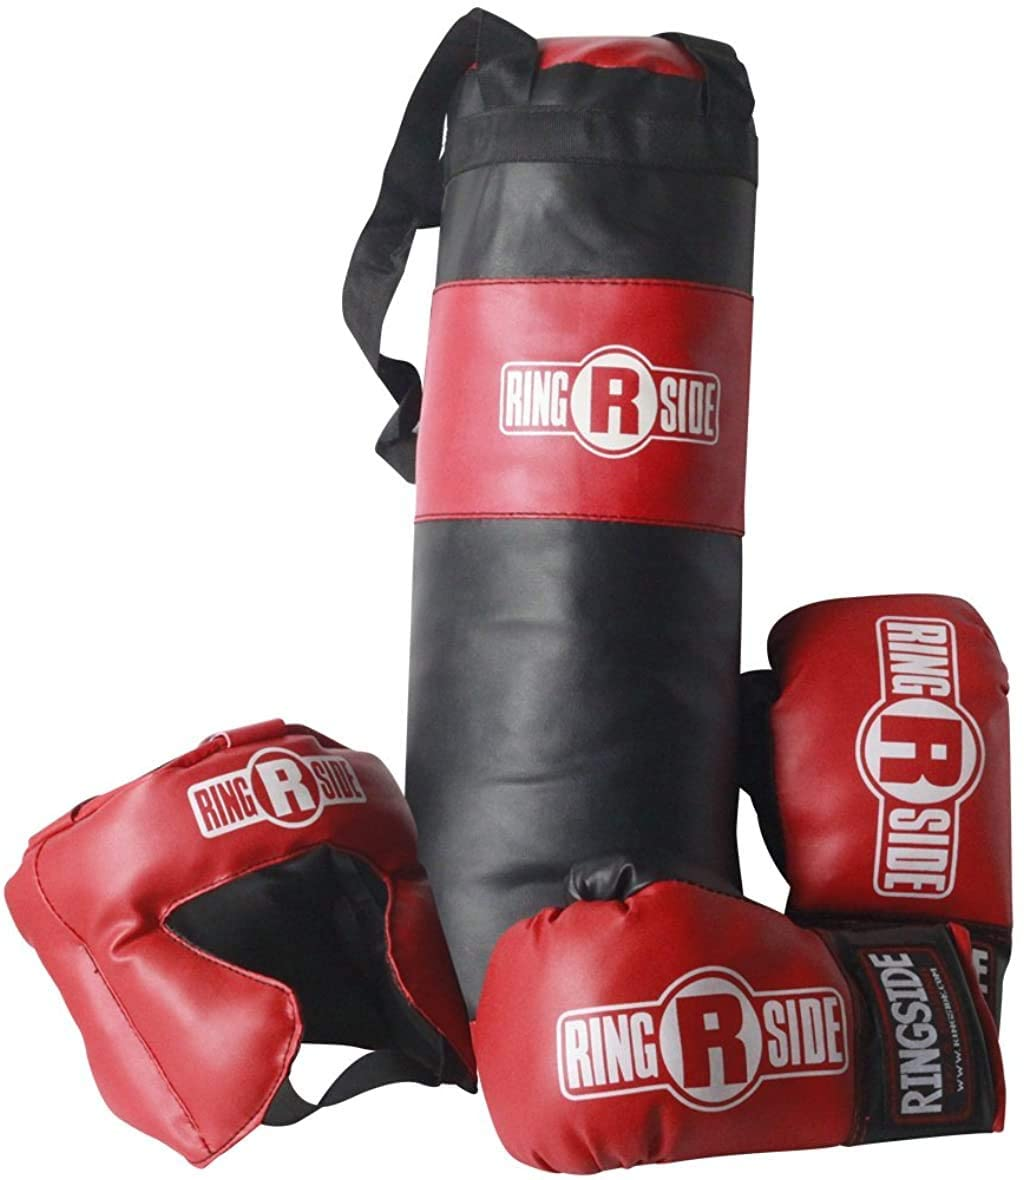 Ringside Kids Boxing Gift Set with gloves, headgear and mini heavy bag